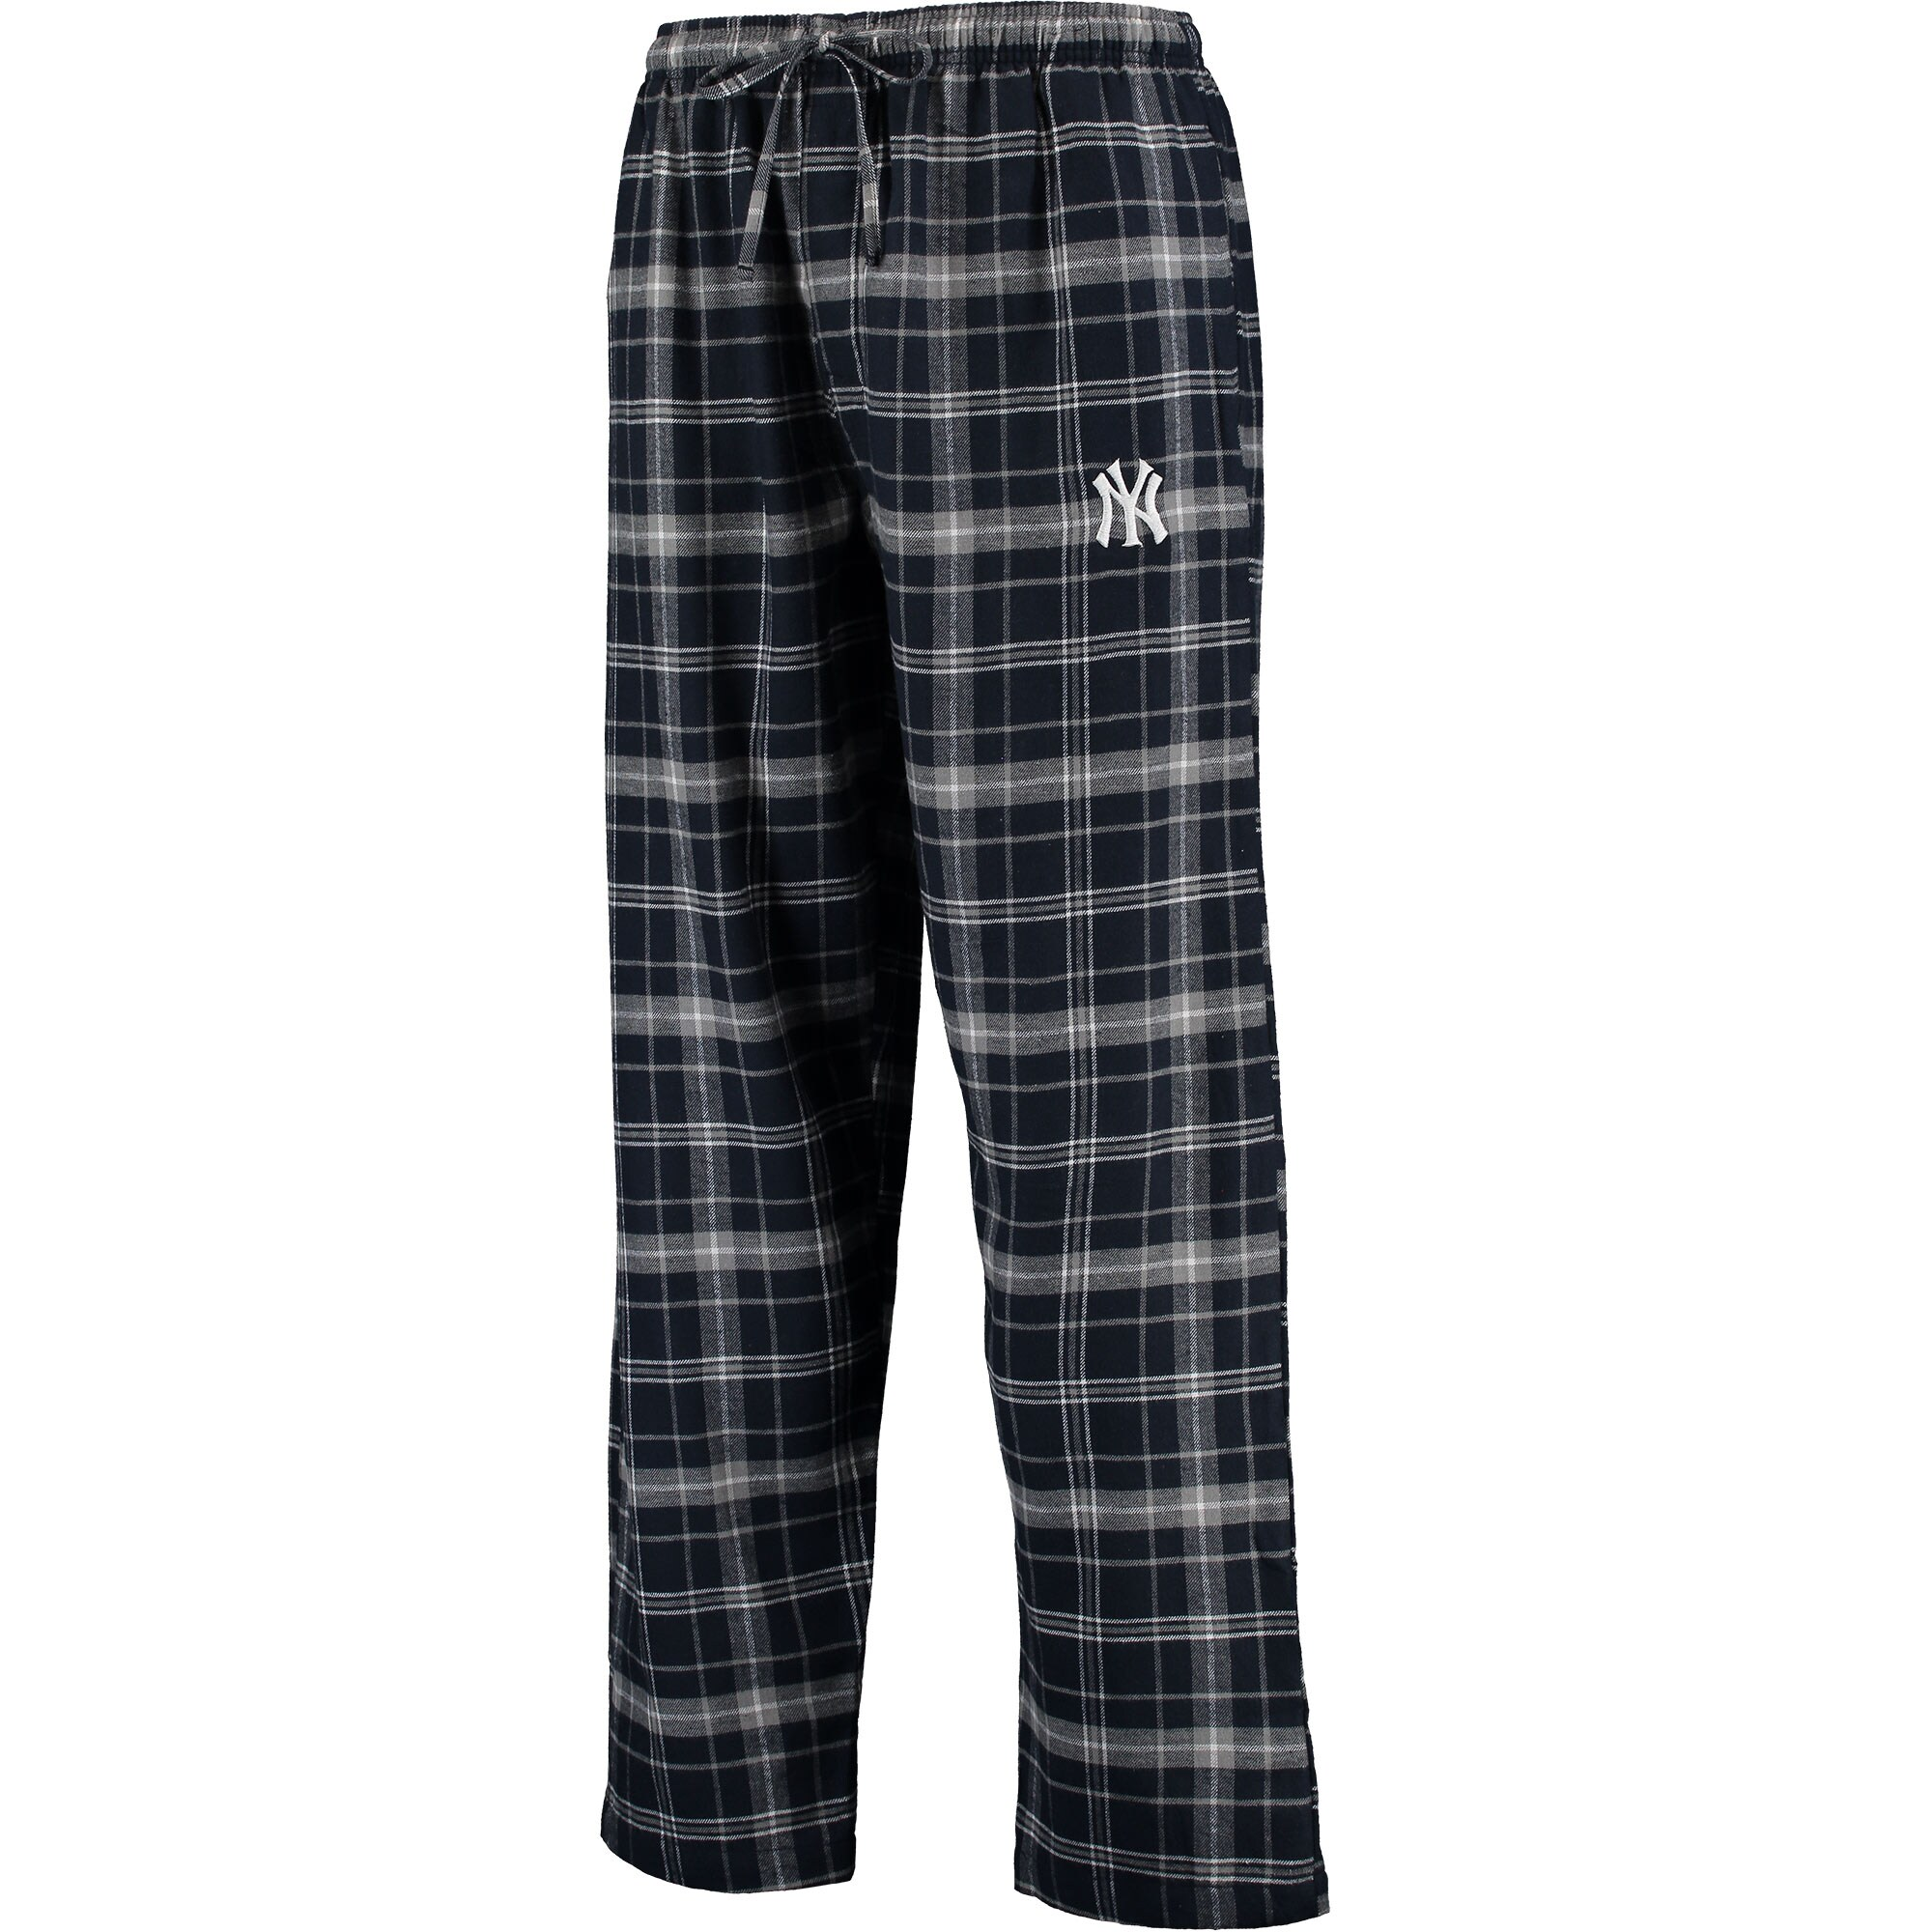 New York Yankees Concepts Sport Team Ultimate Plaid Flannel Pants - Navy/Gray